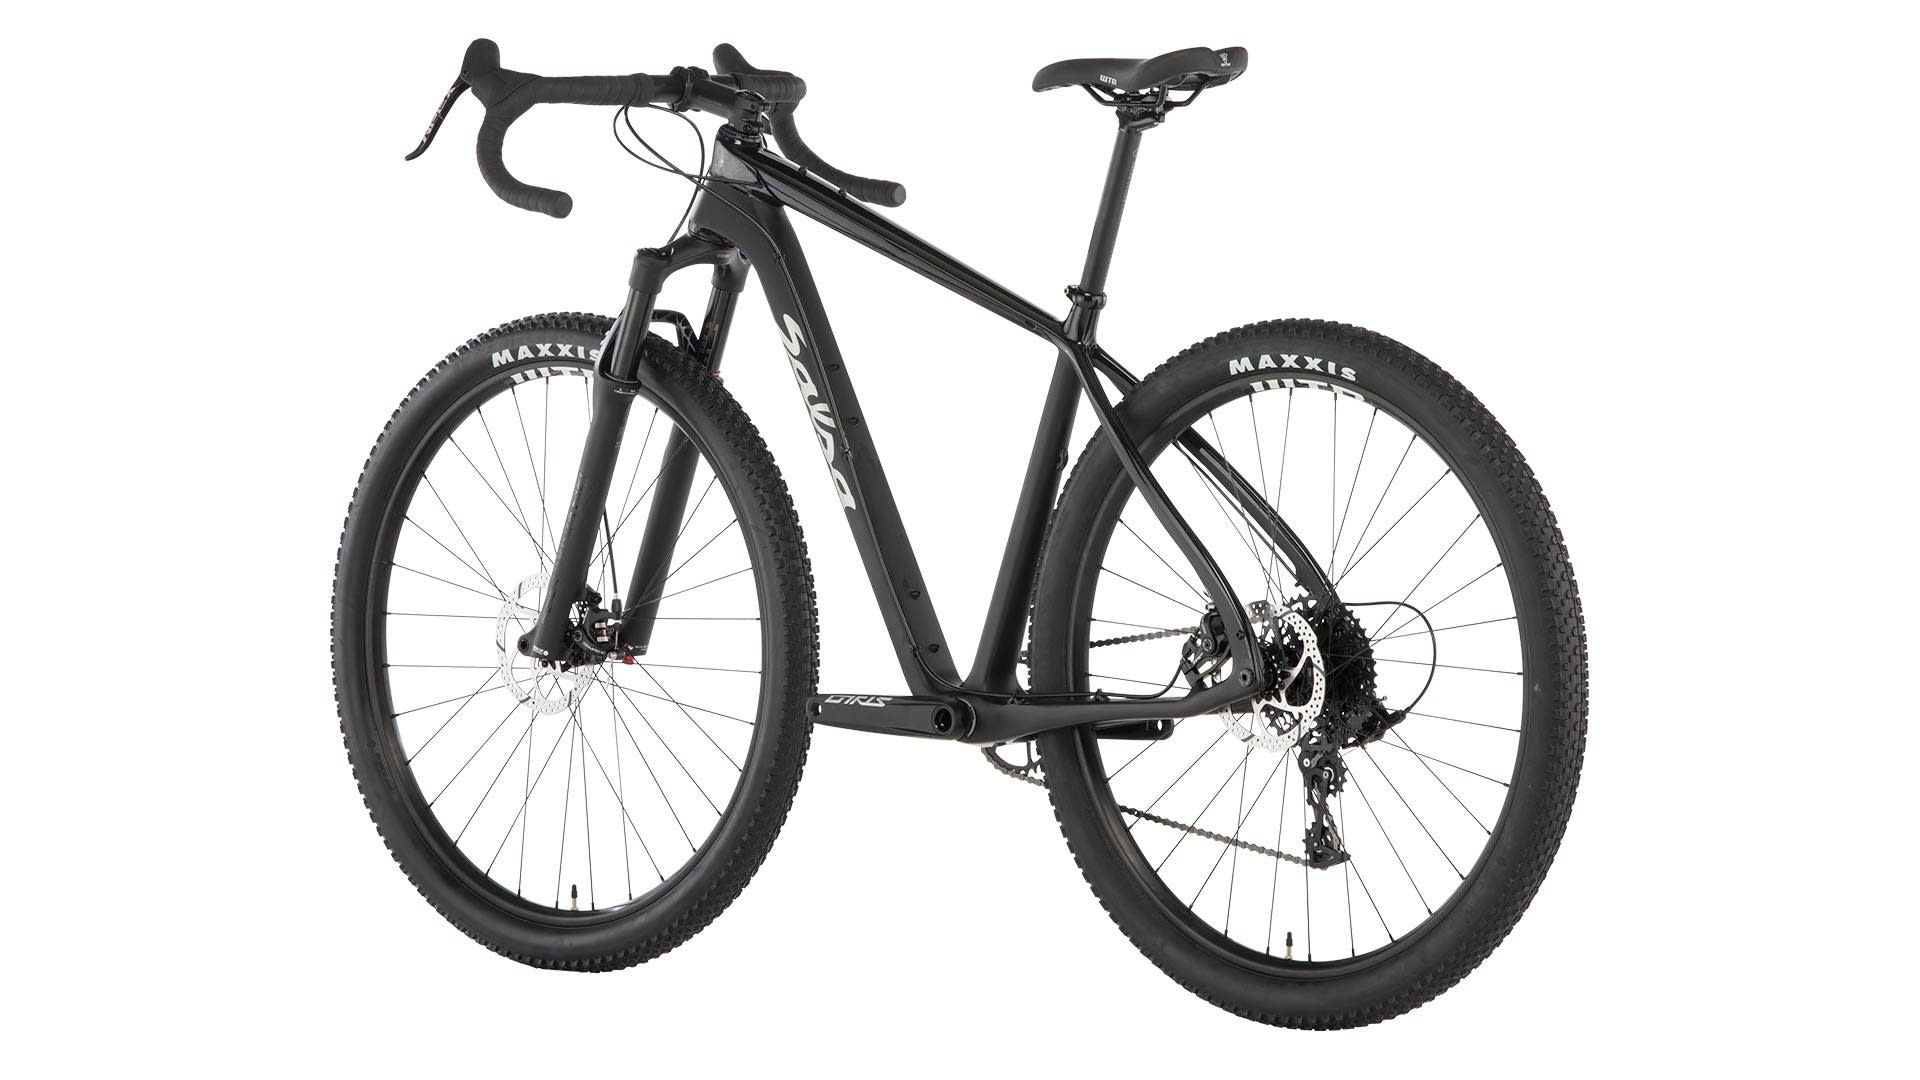 Salsa Salsa Cutthroat Apex 1 Sus Bike Black on Black 2019